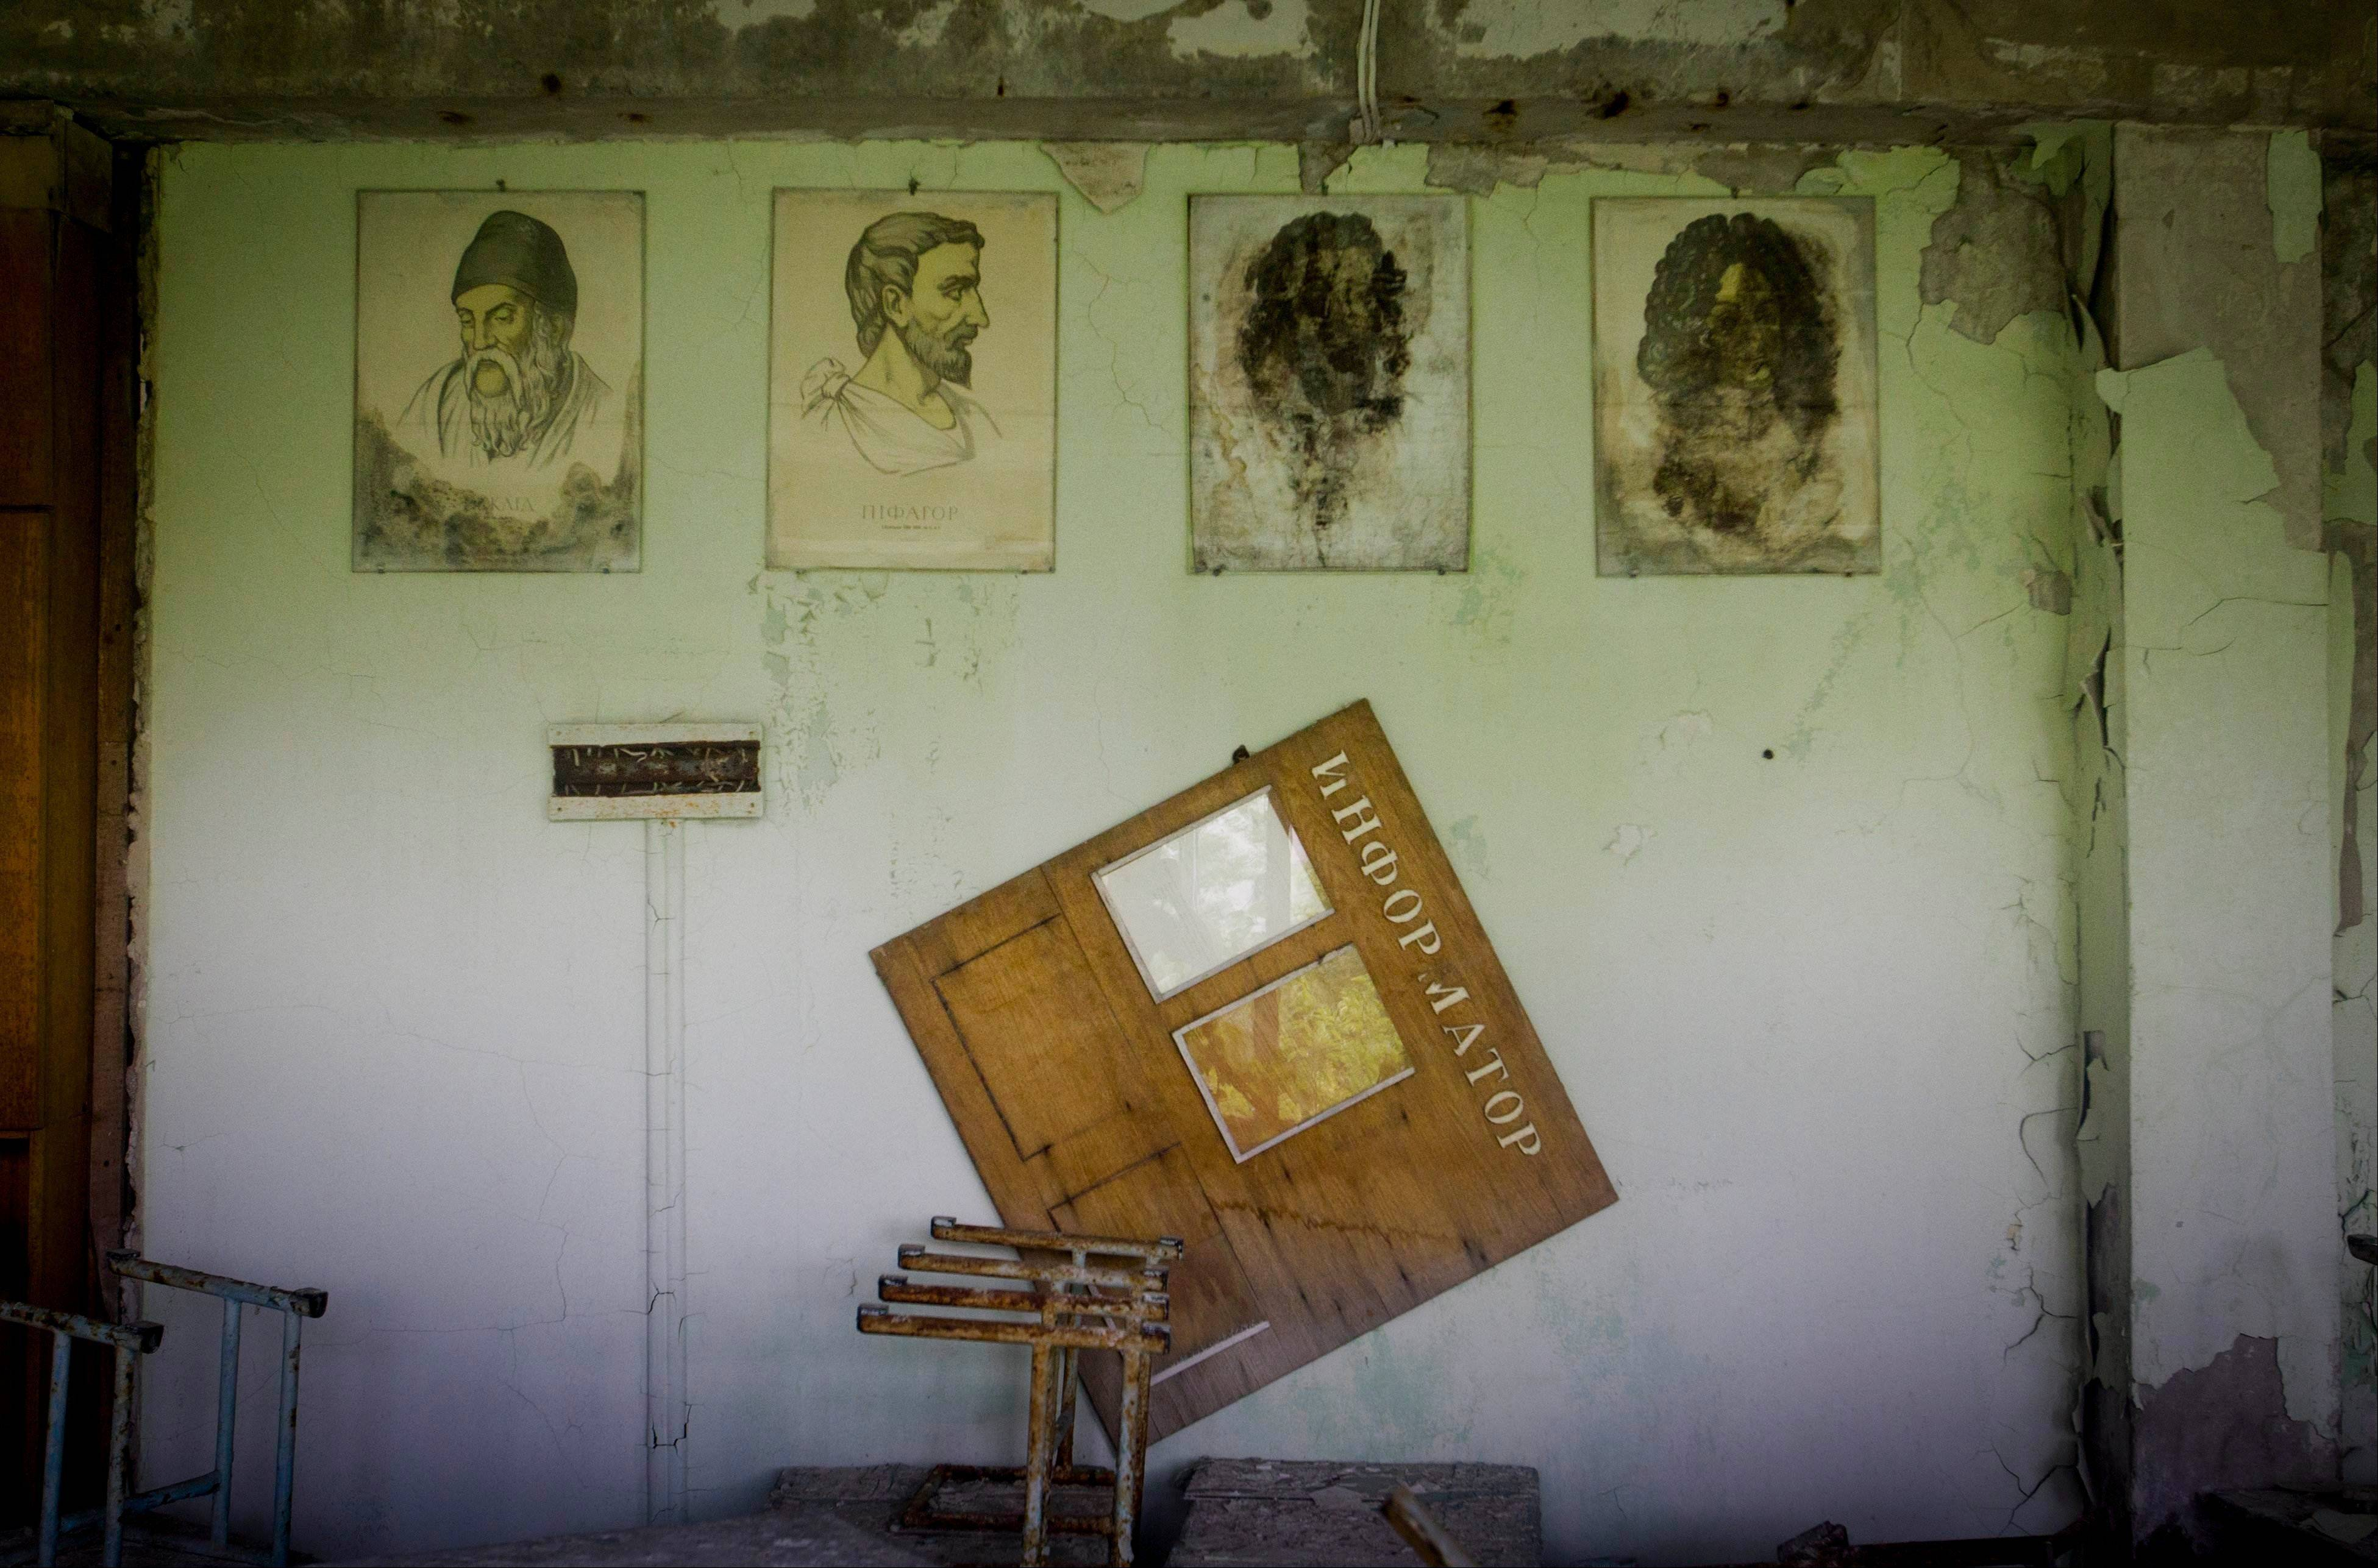 In this Wednesday, June 8, 2011 photo, portraits of ancient physicists and mathematicians hang on a wall in a school in the deserted town of Pripyat, Ukraine, some 3 kilometers (1.86 miles) from the Chernobyl nuclear plant. Chernobyl and Fukushima are some 5,000 miles apart but have much in common. The towns nearest to each of these stricken nuclear power stations, in Ukraine and Japan, whose disasters struck 25 years apart, already reveal eerie similarities.